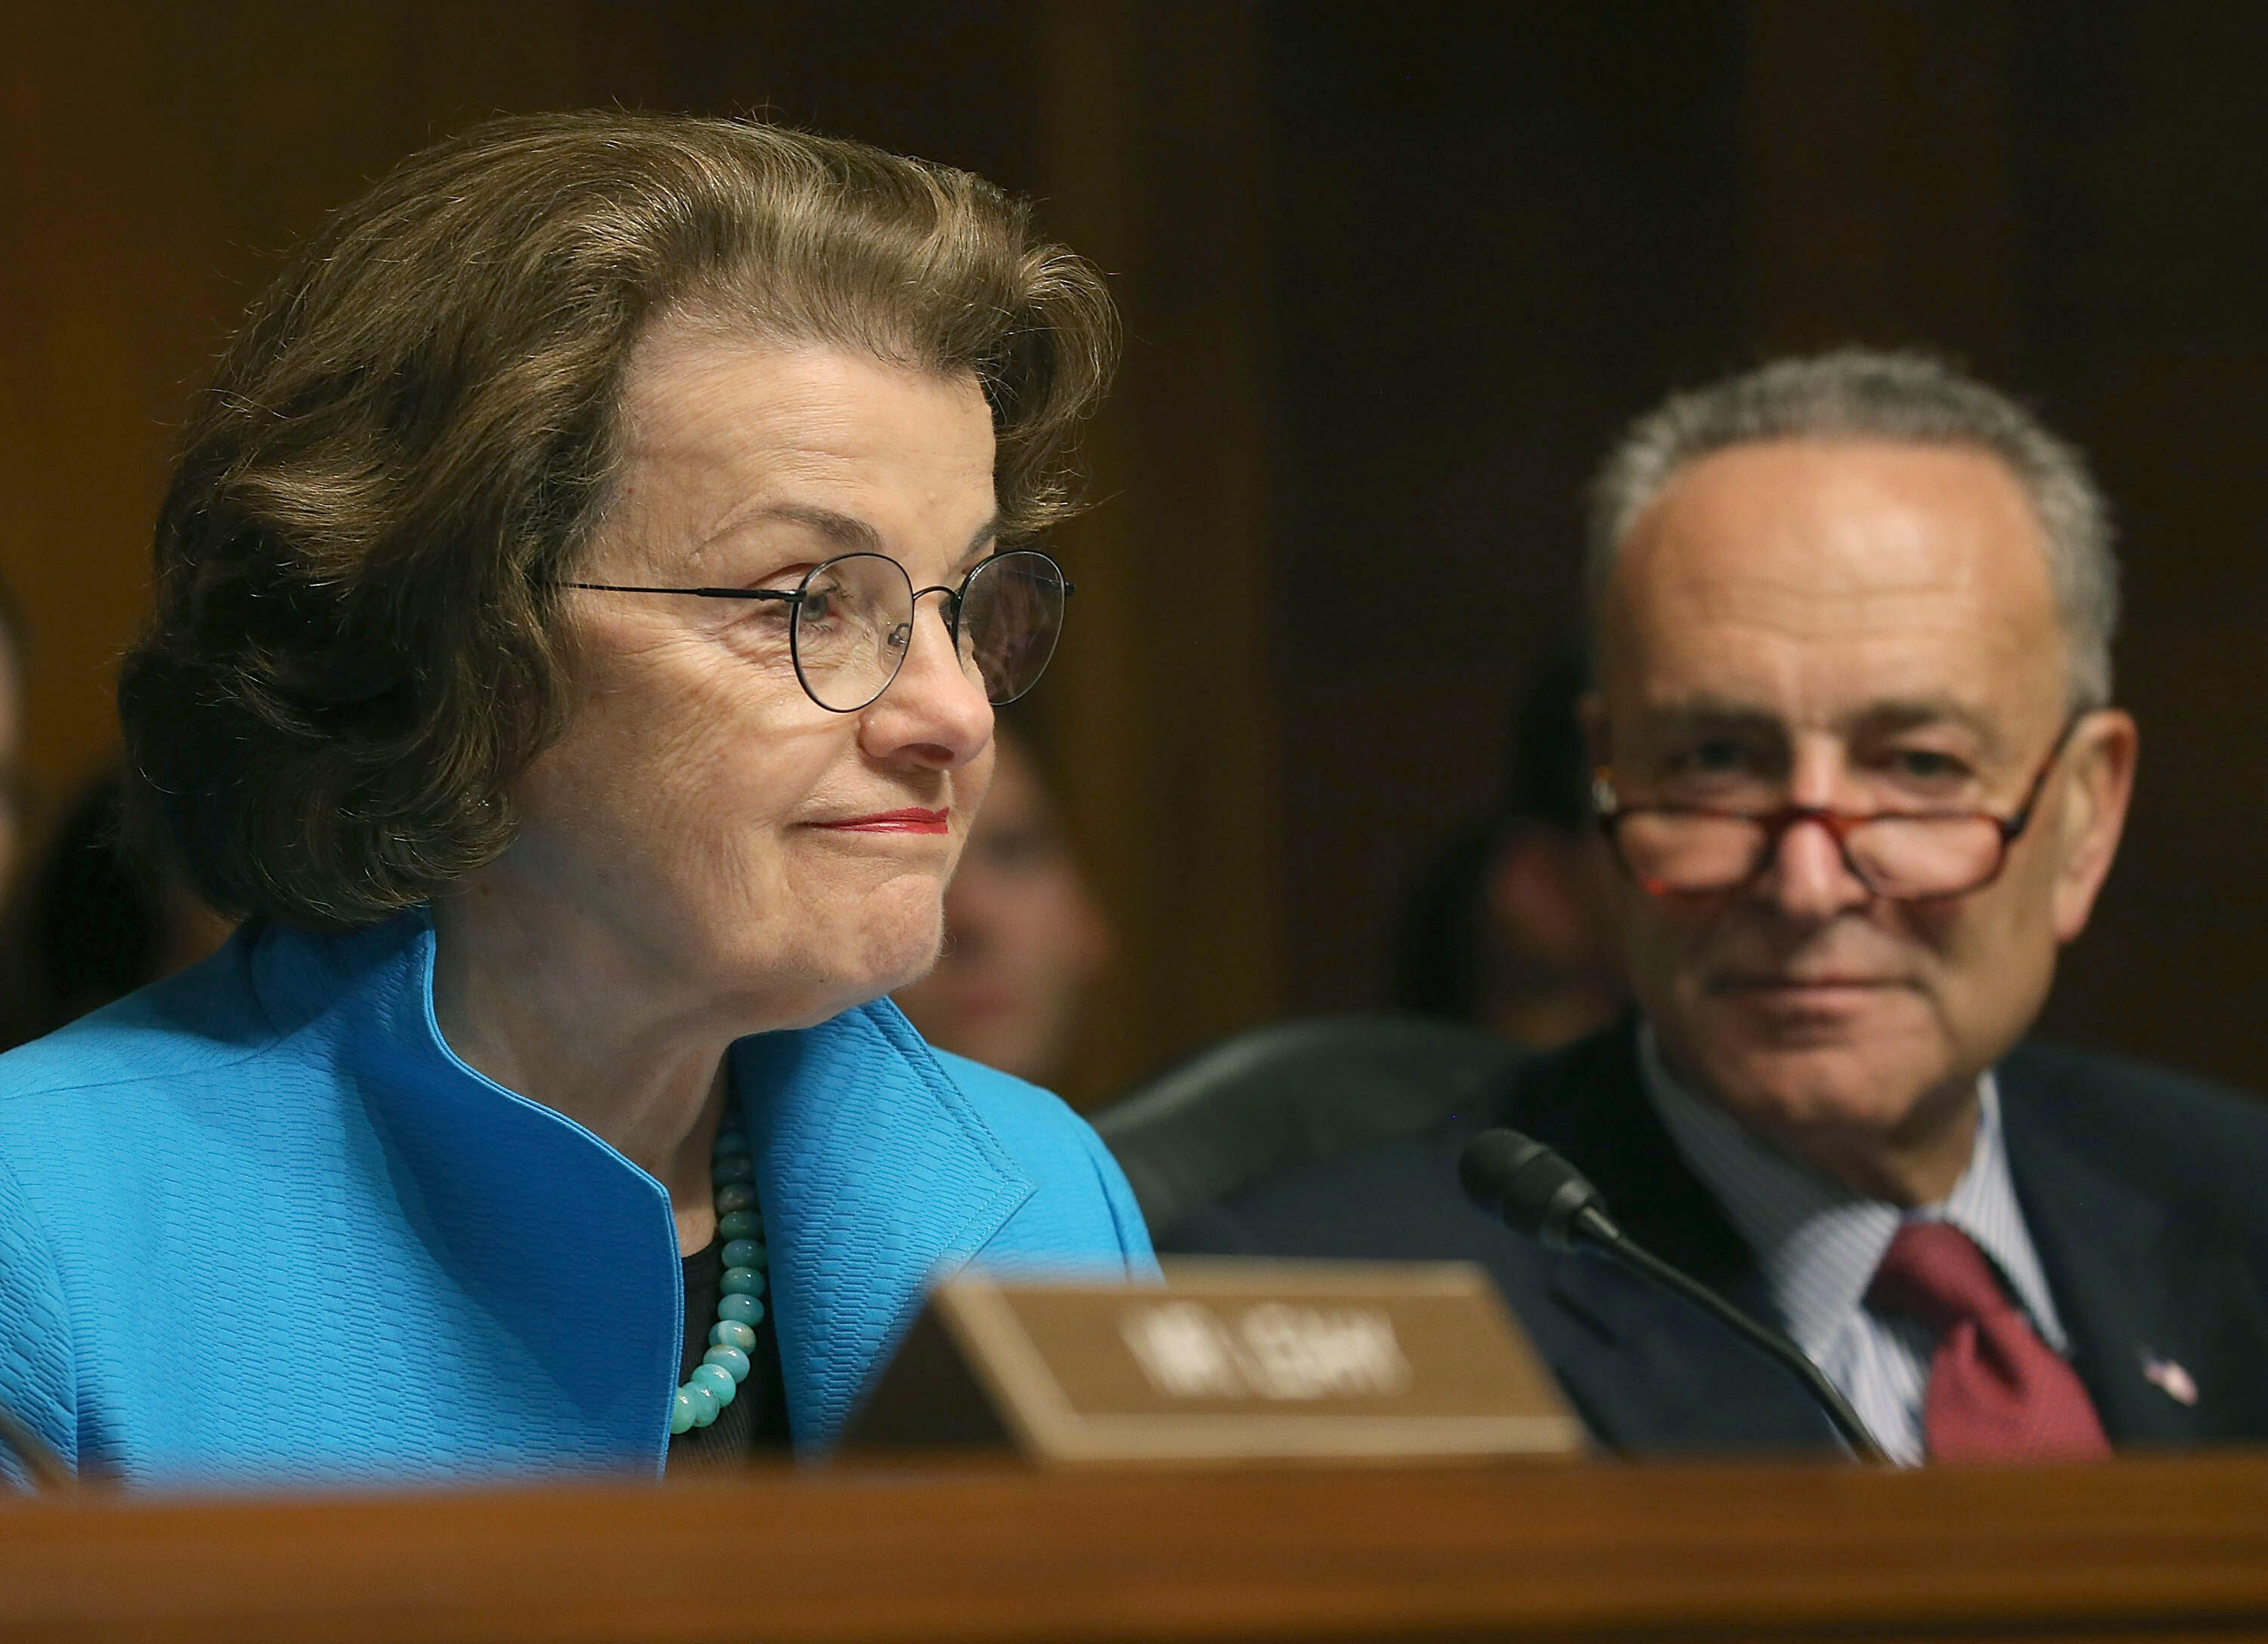 WASHINGTON, DC - JULY 08: Sen. Dianne Feinstein (D-CA) (L) and Sen. Chuck Schumer (D-NY) participate in a Senate Judiciary Committee hearing on Capitol Hill, July 8, 2015 in Washington, DC. The committee was hearing testimony on encryption technology, and